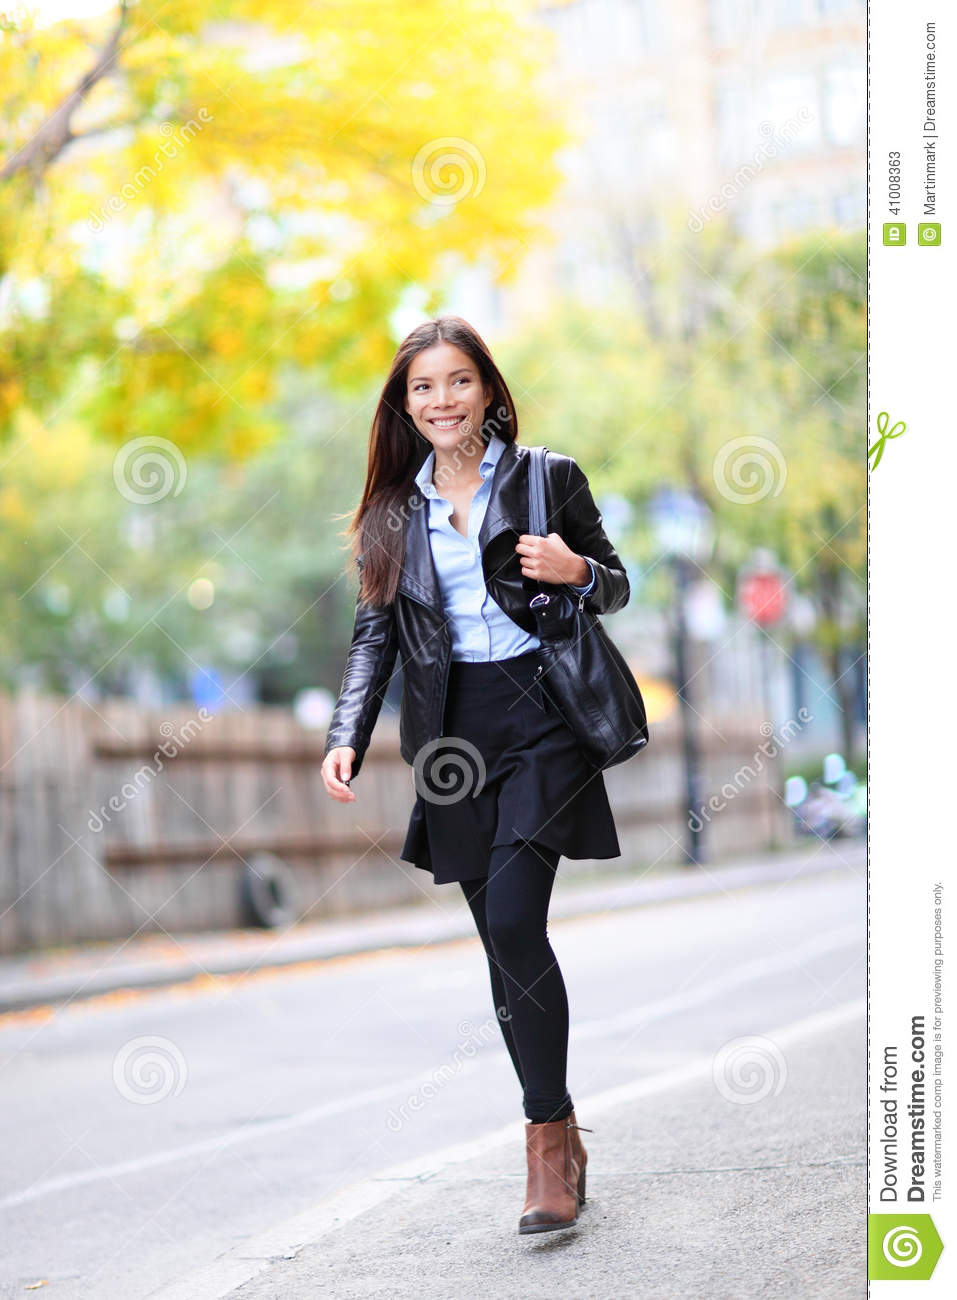 Young Urban Professional Woman In Walking In City Stock Photo Image 41008363